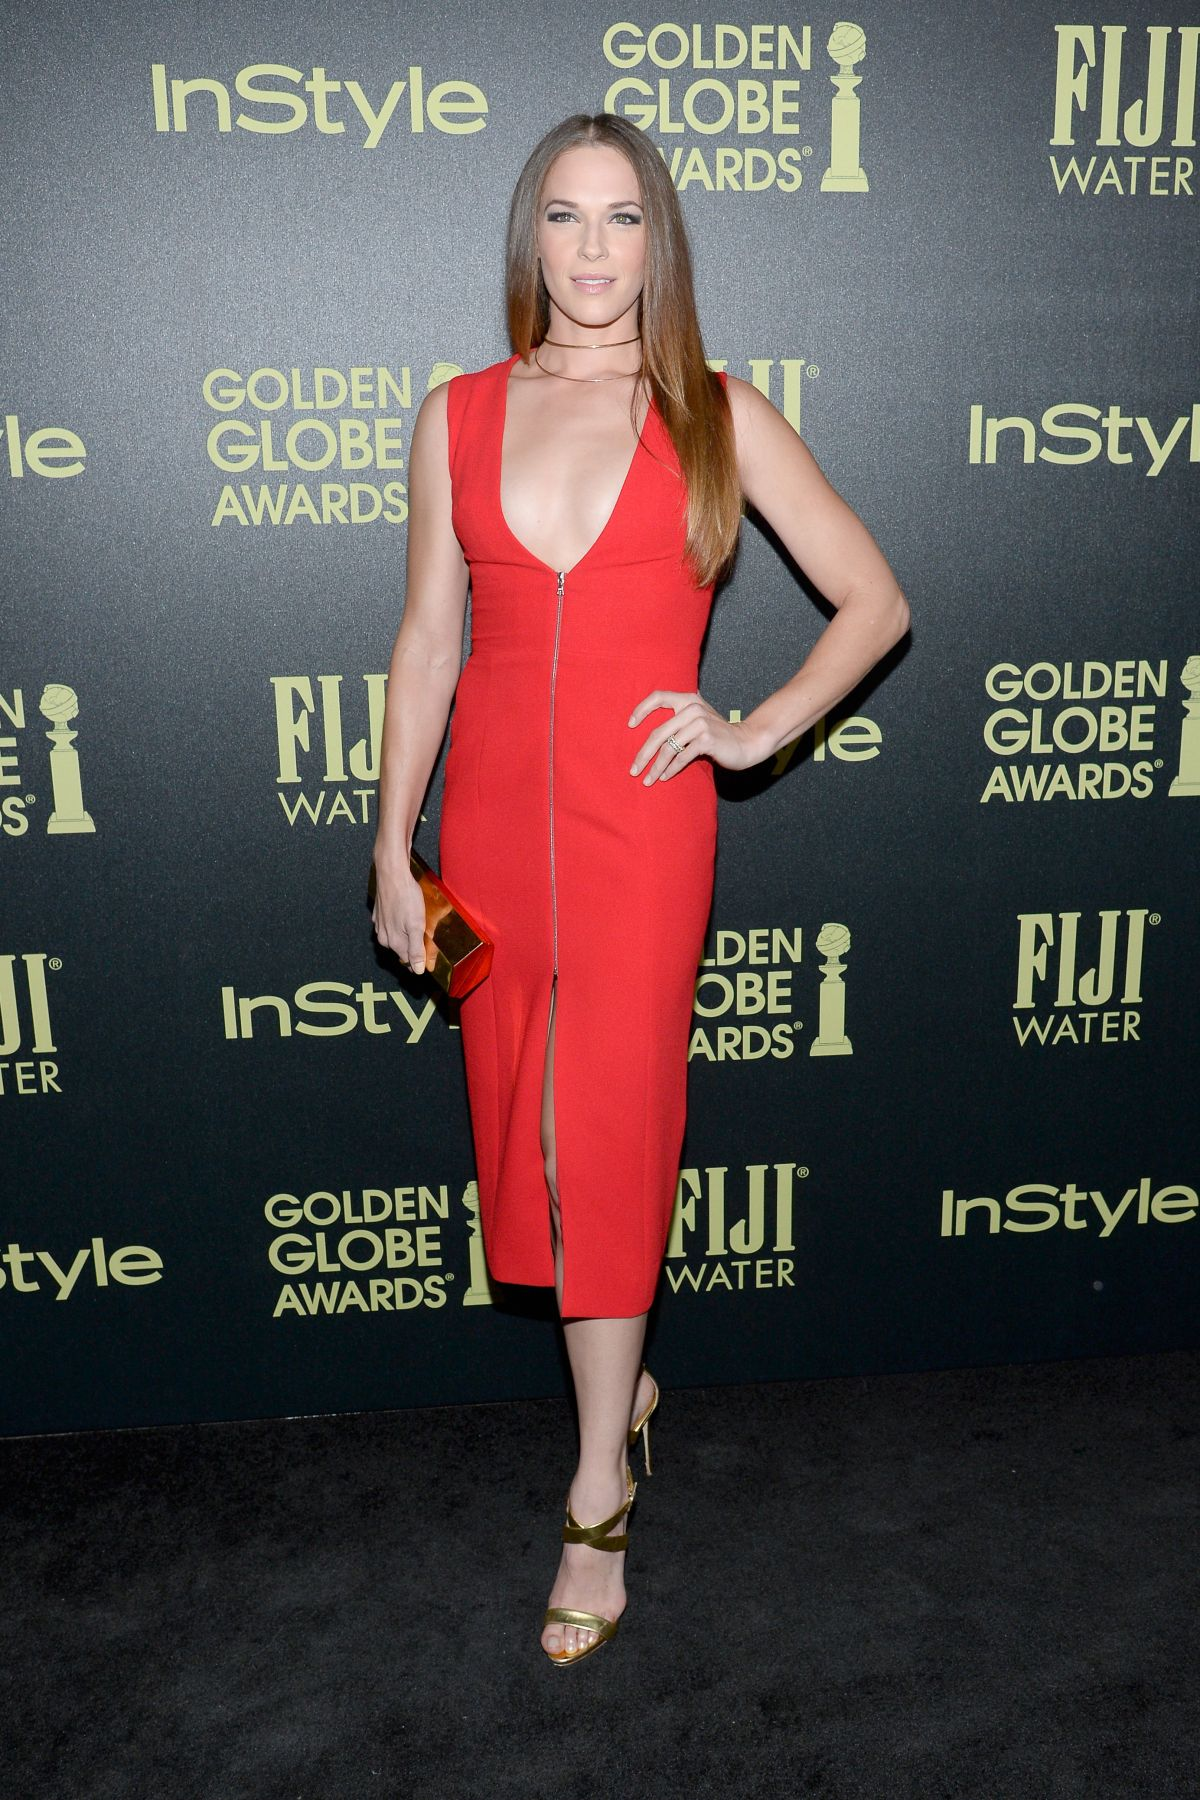 AMANDA RIGHETTI at hfpa and Instyle Celebrate 2016 Golden Globe Award Season in West Hollywood 11/17/2015